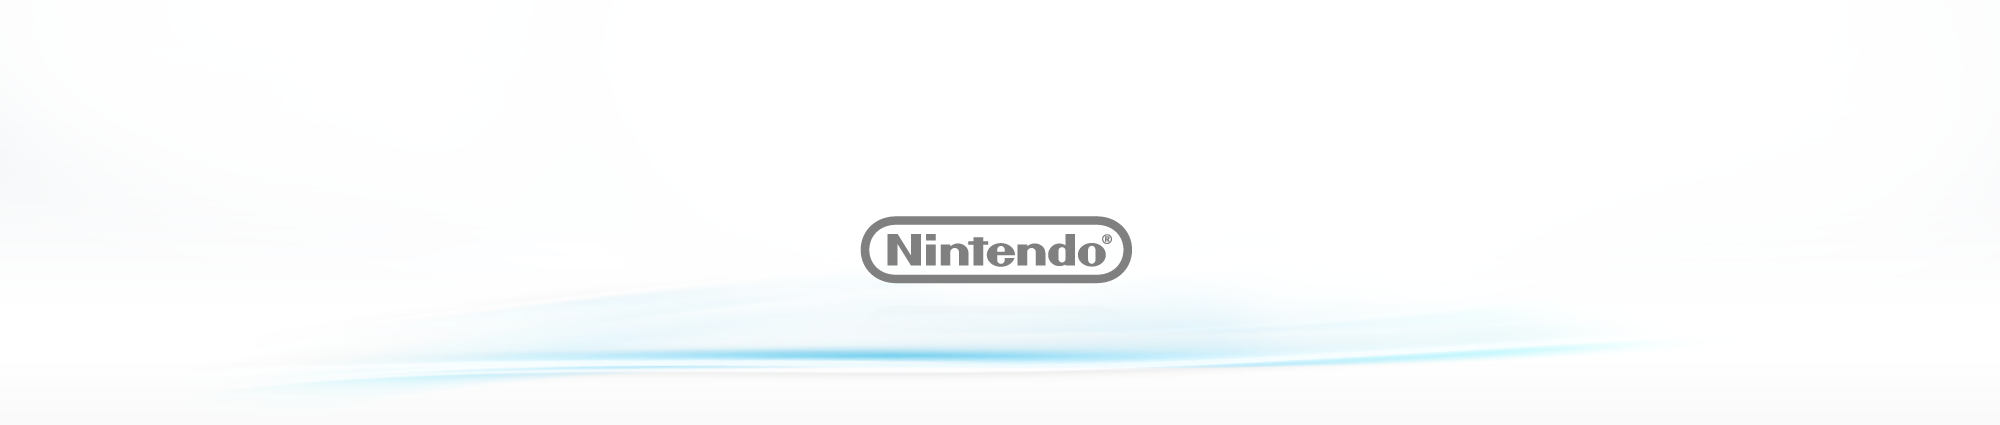 Wat is een Nintendo-account?